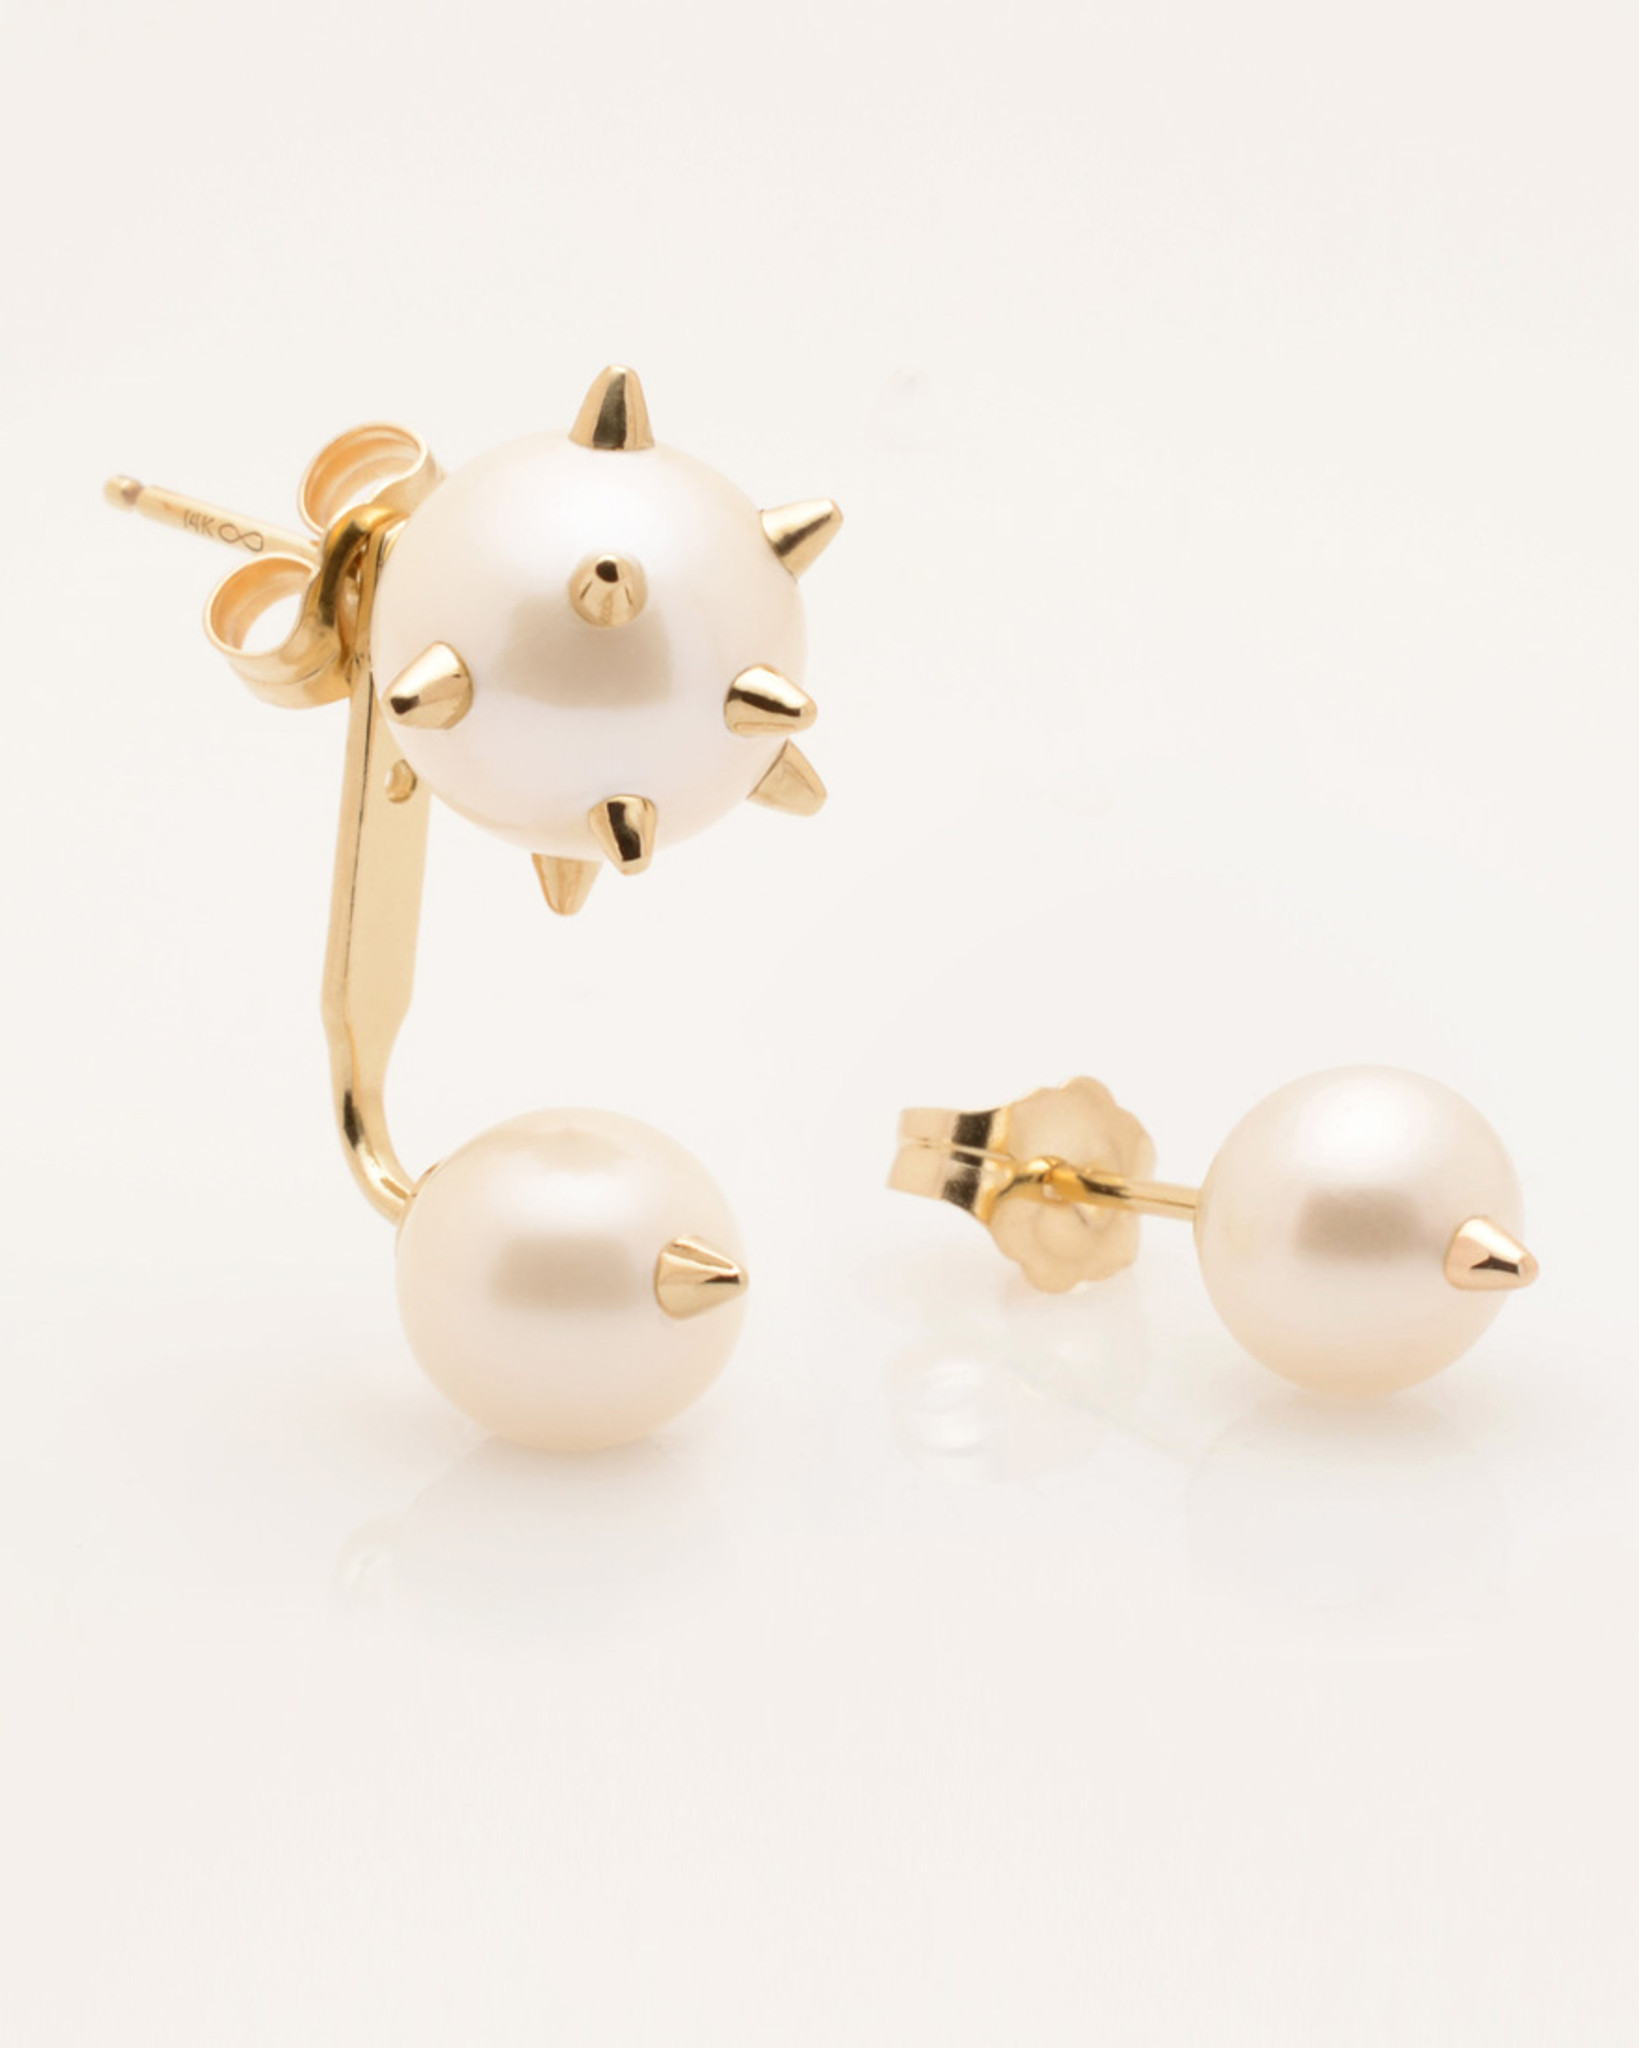 Cultured Freshwater Double Pearl Earrings with 14k Gold Spikes & Jacket by Jewelry Designer Nektar De Stagni (8-6 mm)